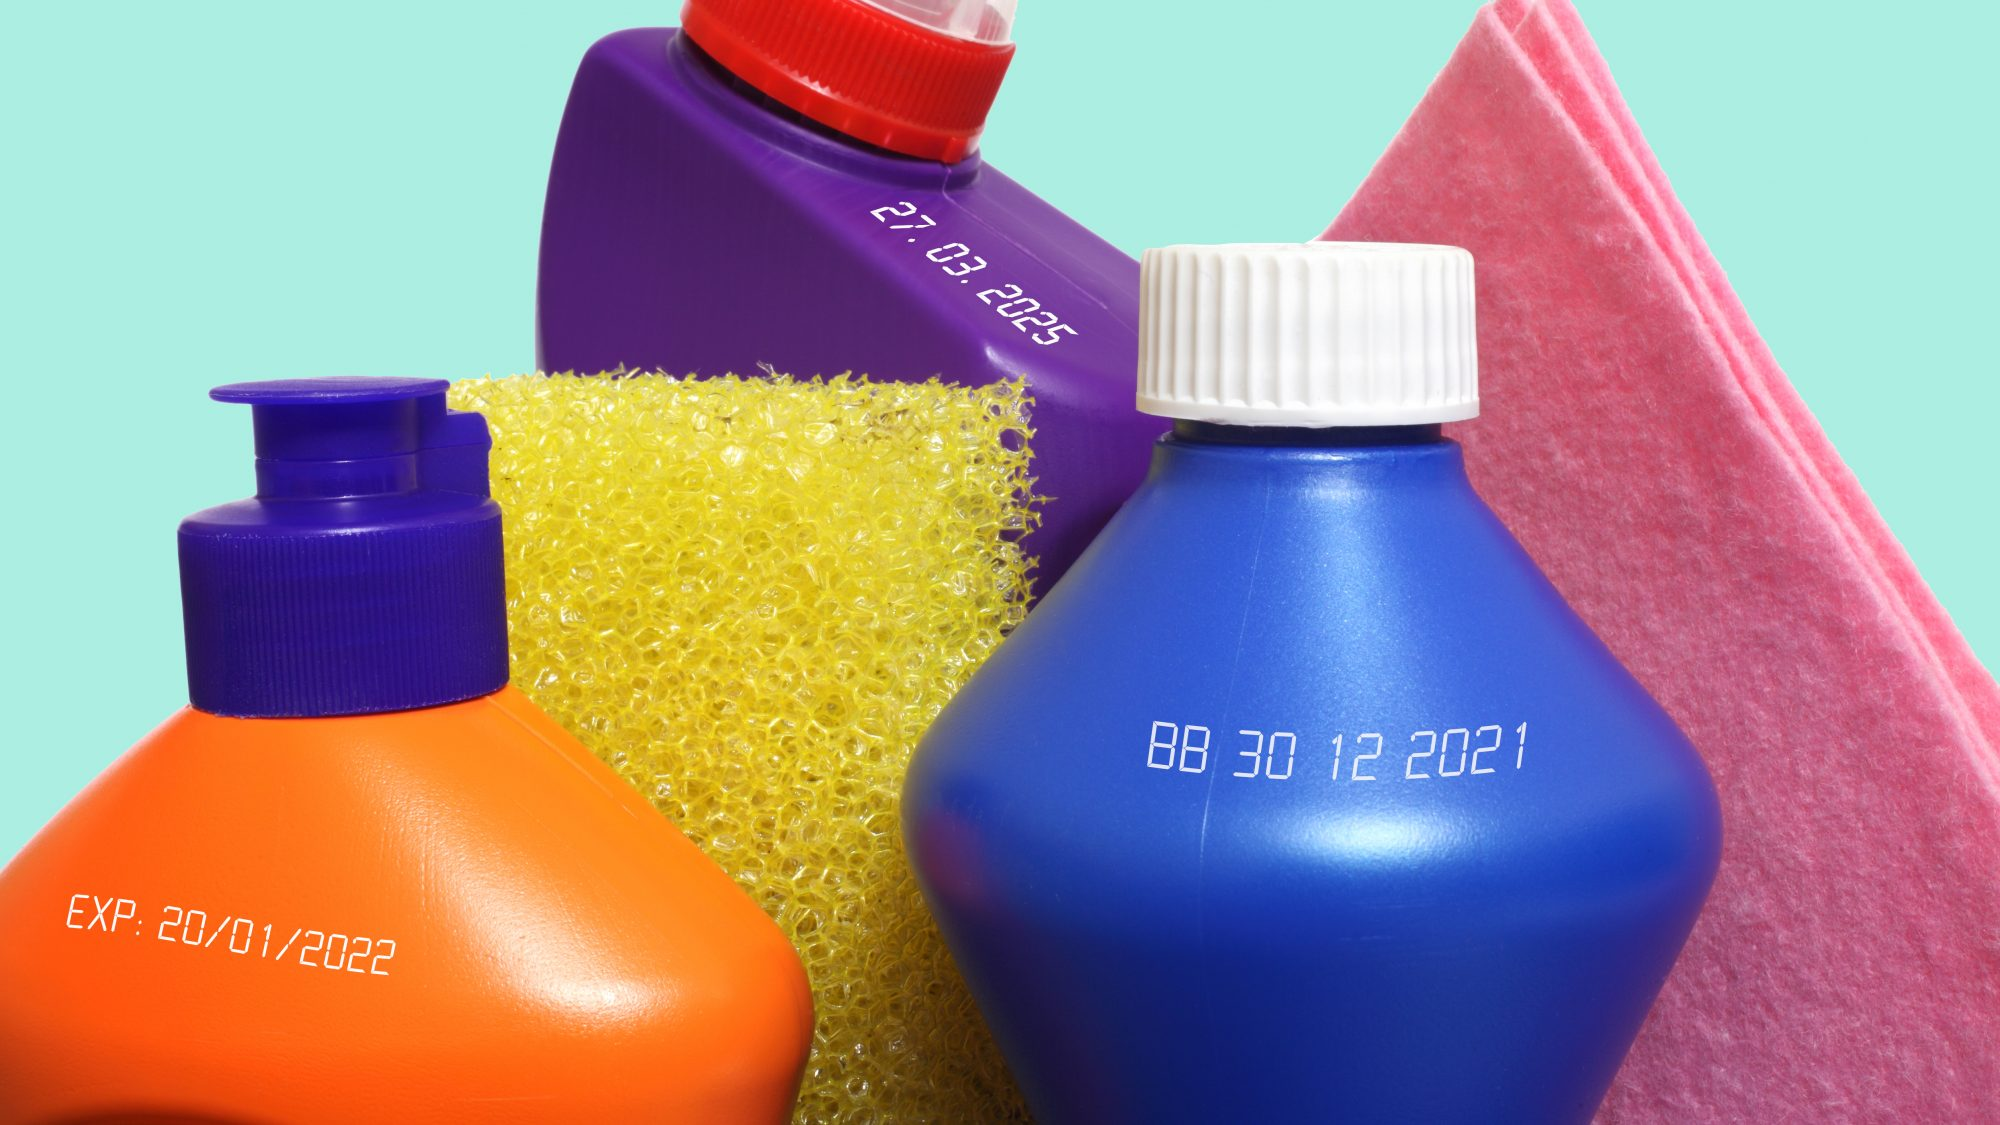 Cleaning Product Expiration Dates on bottles